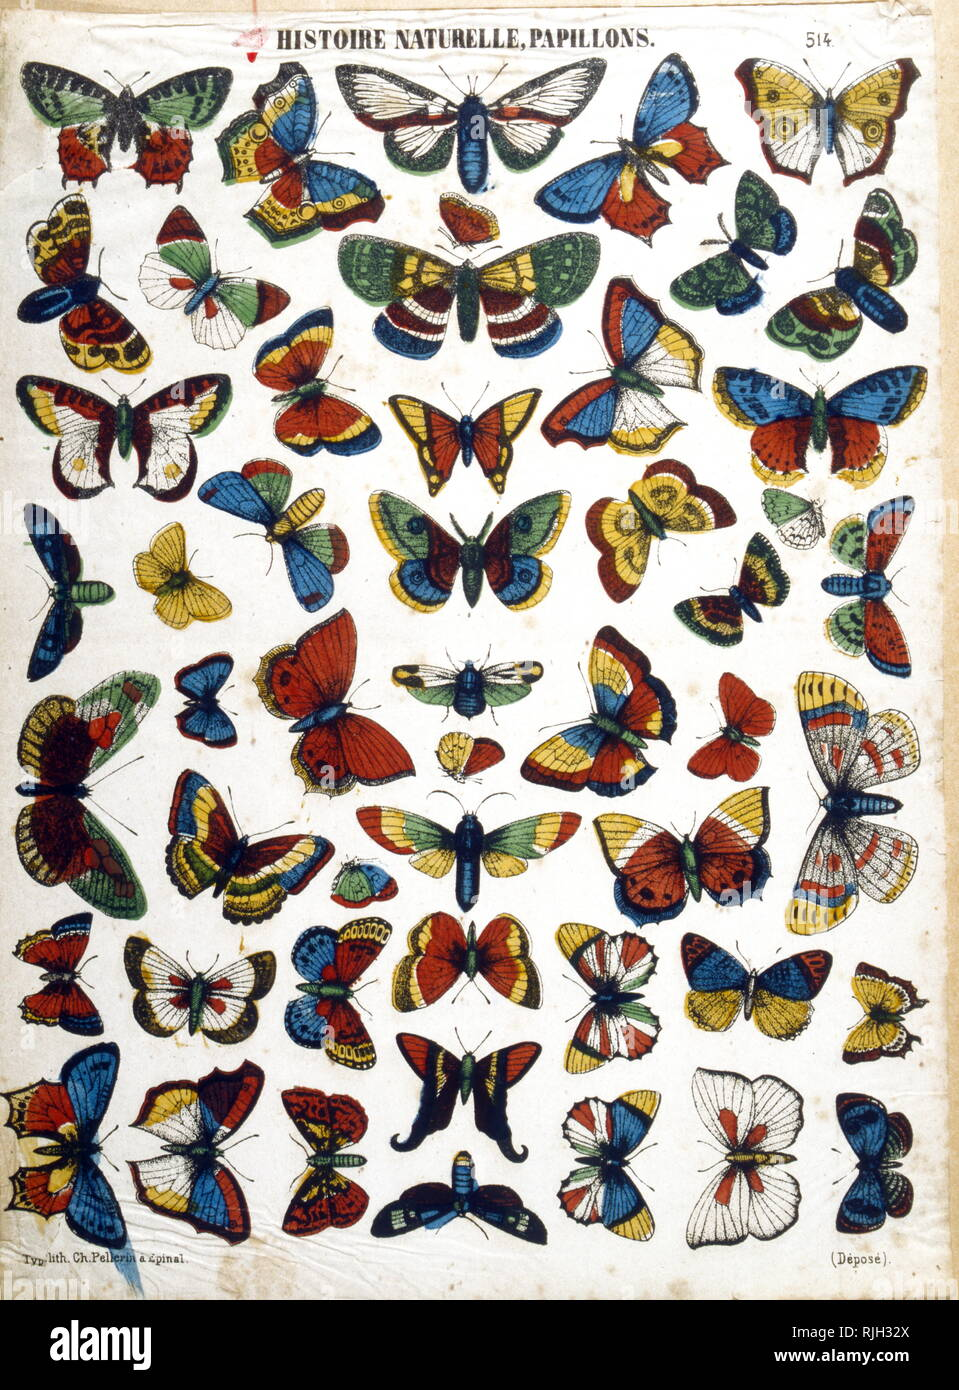 Butterflies; illustration of different species by 'Epinal images created by Imagerie Pellerin; France 1860. Jean-Charles Pellerin (1756-1836); French draftsman, illustrator and printer. He is famous for the images of epinal which he composed since the Revolution and which he printed himself from 1800. Succeeding his father, he took in 1773 the direction of the 'Factory of Pellerin' 3. From 1796, he expanded his activity and created the 'Imagerie Pellerin'. As early as 1800, he started a small business, a real imaginary industry, which later became known as Imagerie d'epinal. Charles Nicolas Pe - Stock Image